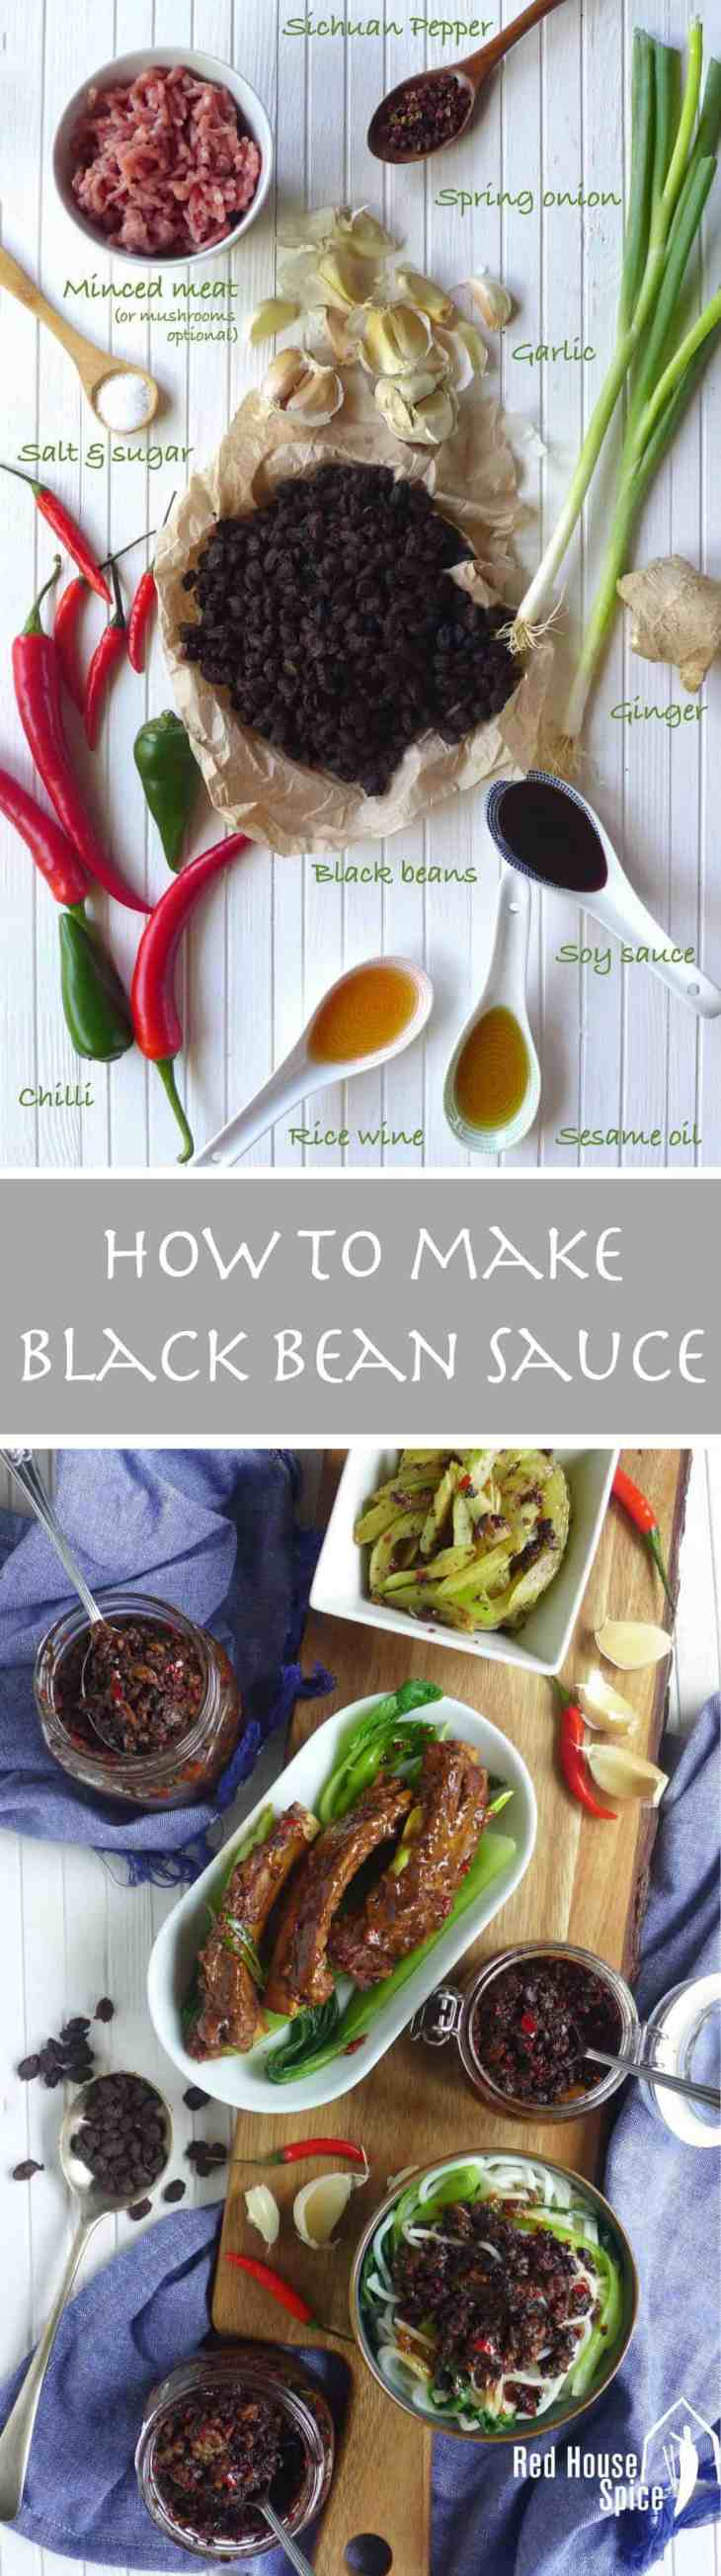 Popular, versatile Chinese black bean sauce can be easily made at home. I have three versions to share: classic, with mushrooms or with minced meat.